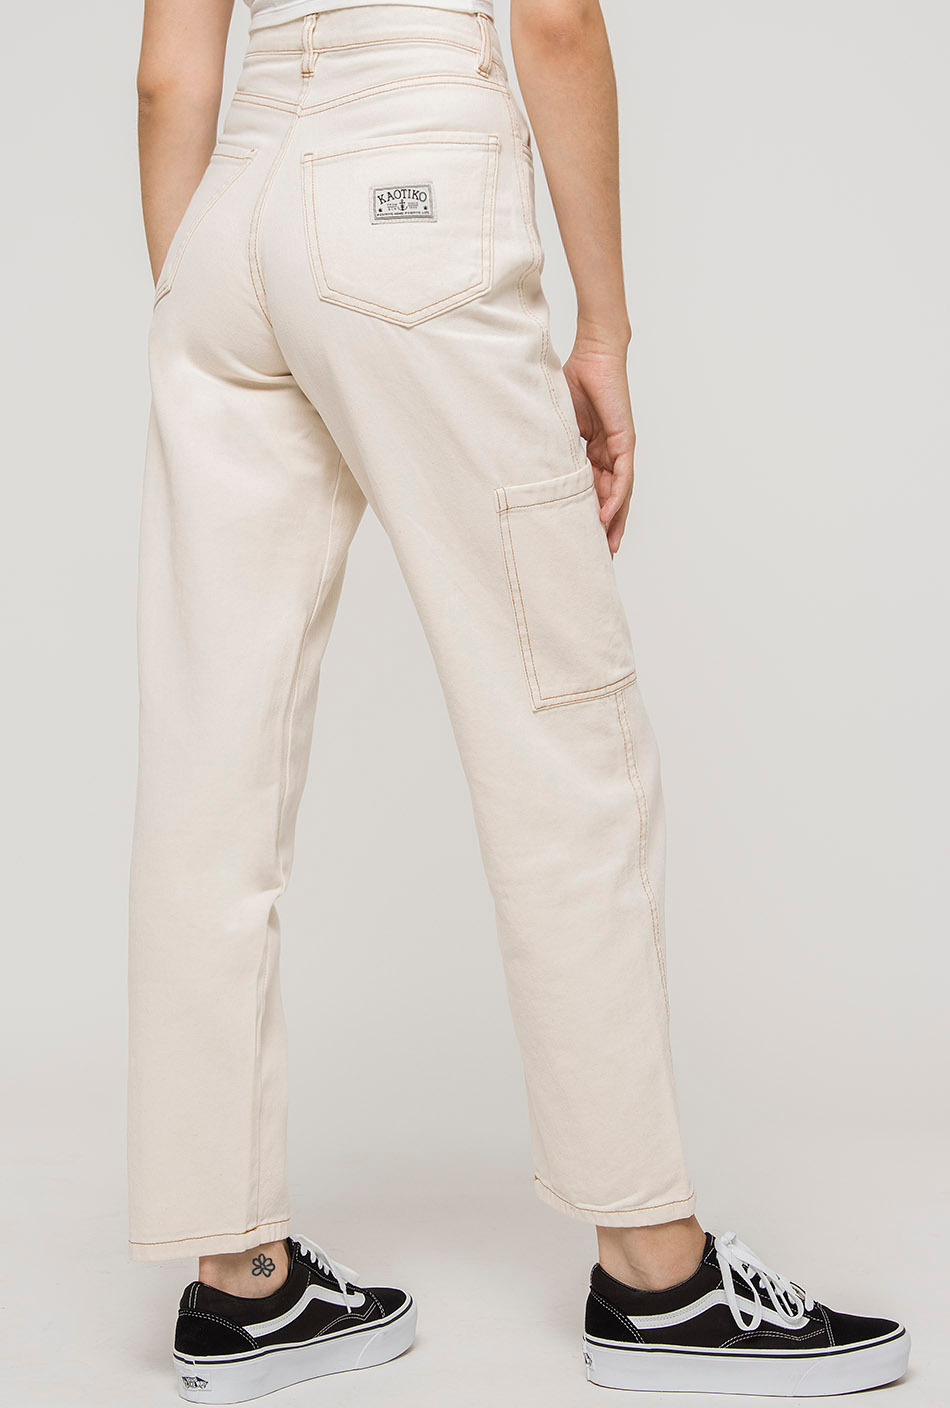 Factory Nature trousers